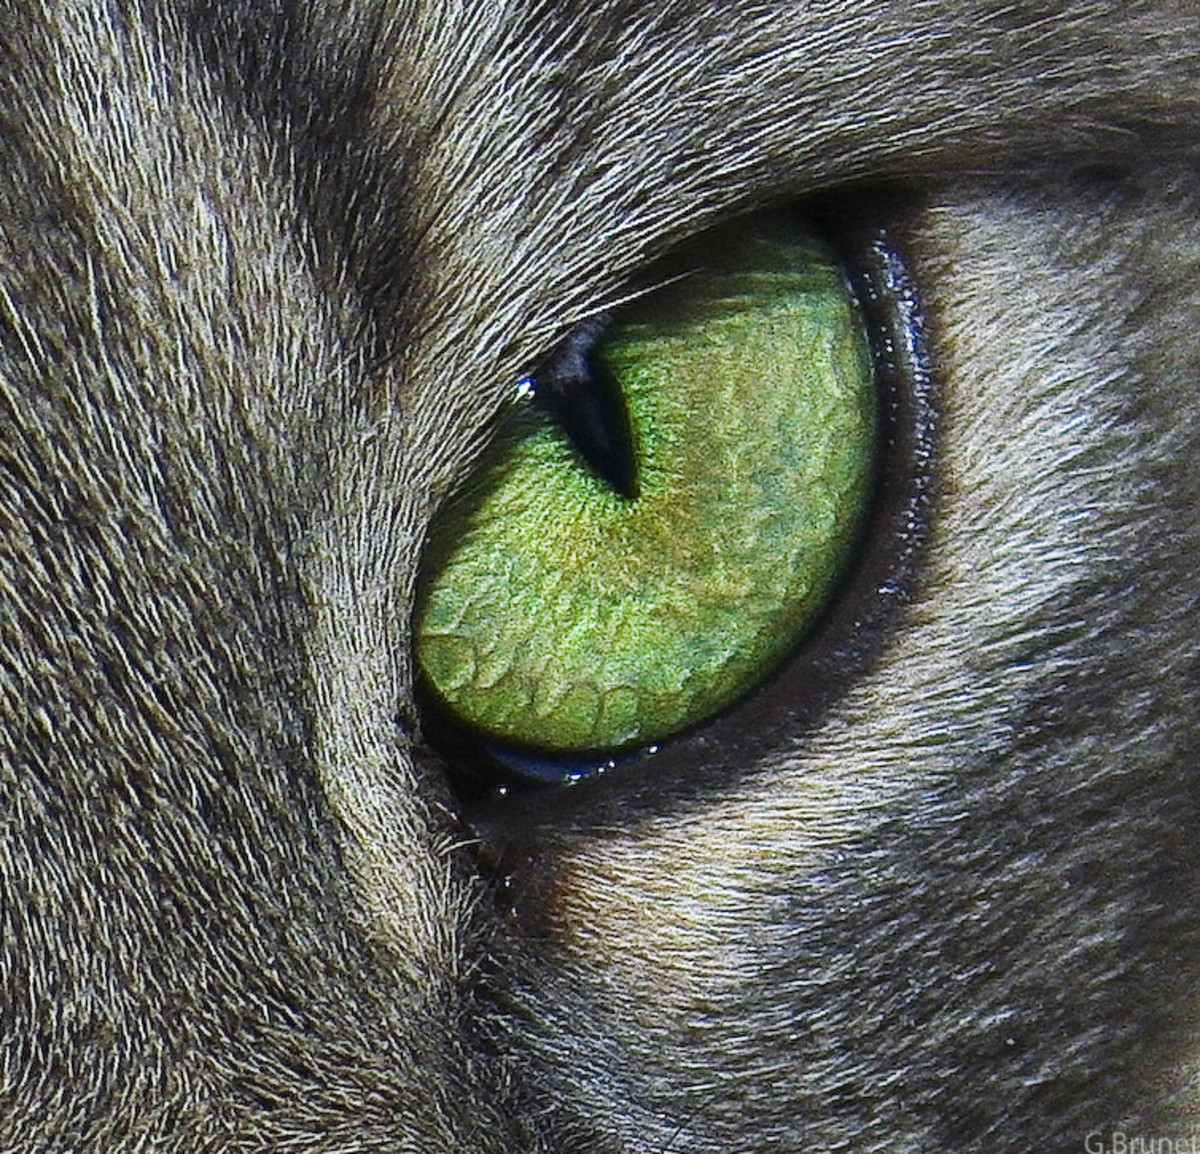 Healthy eyes should match one another in shape, alertness, and width of pupil. If one eye is more closed than another, then most likely it is injured. Also the whites in a cat's eye should be free of yellow or red.